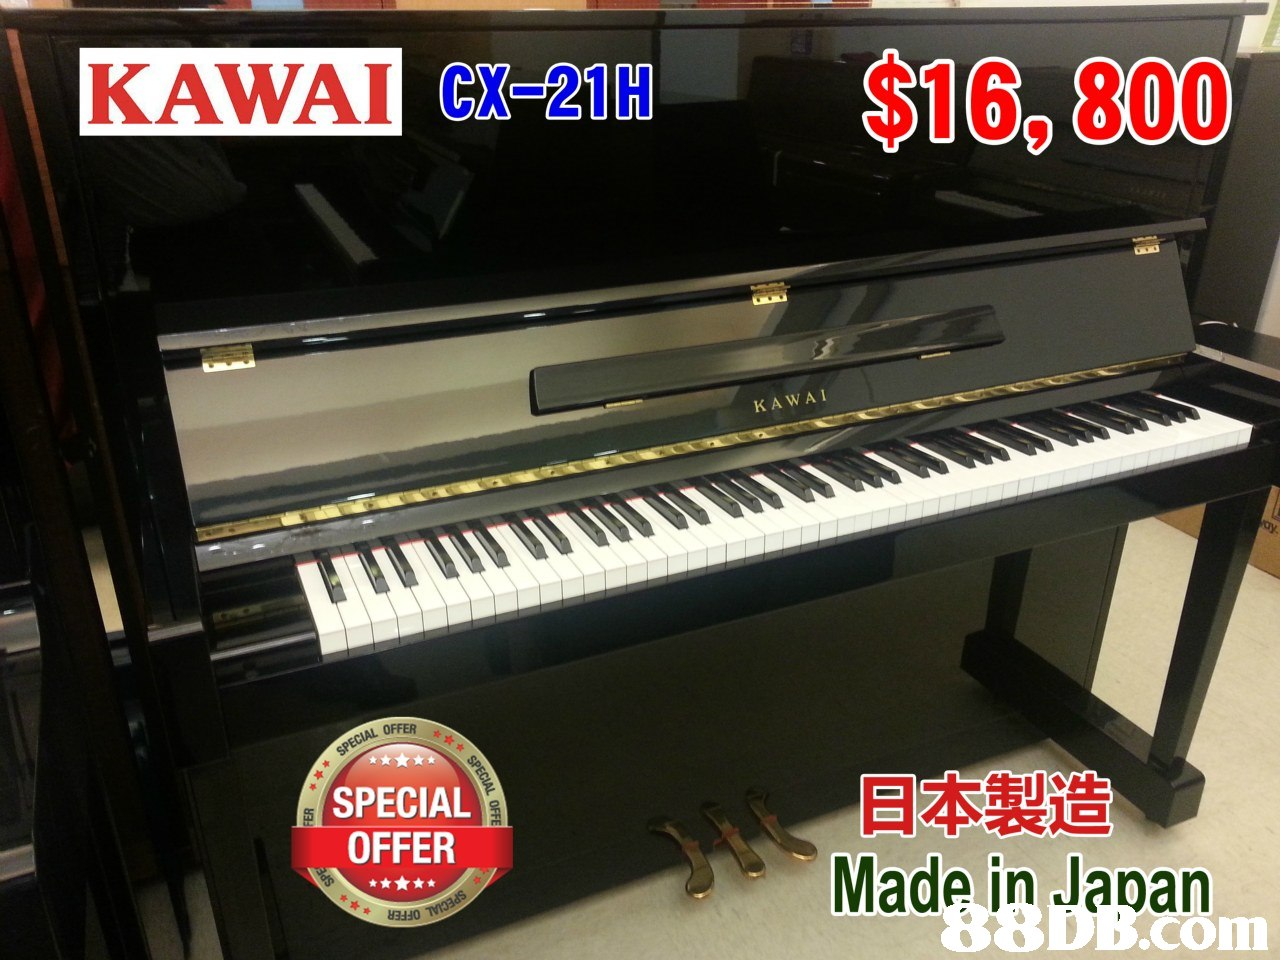 KAWAI CX-21H $16,800 KAWAI OFFER SPECIAL OFFER 制 Made in Japan .com In,musical instrument,piano,keyboard,technology,digital piano